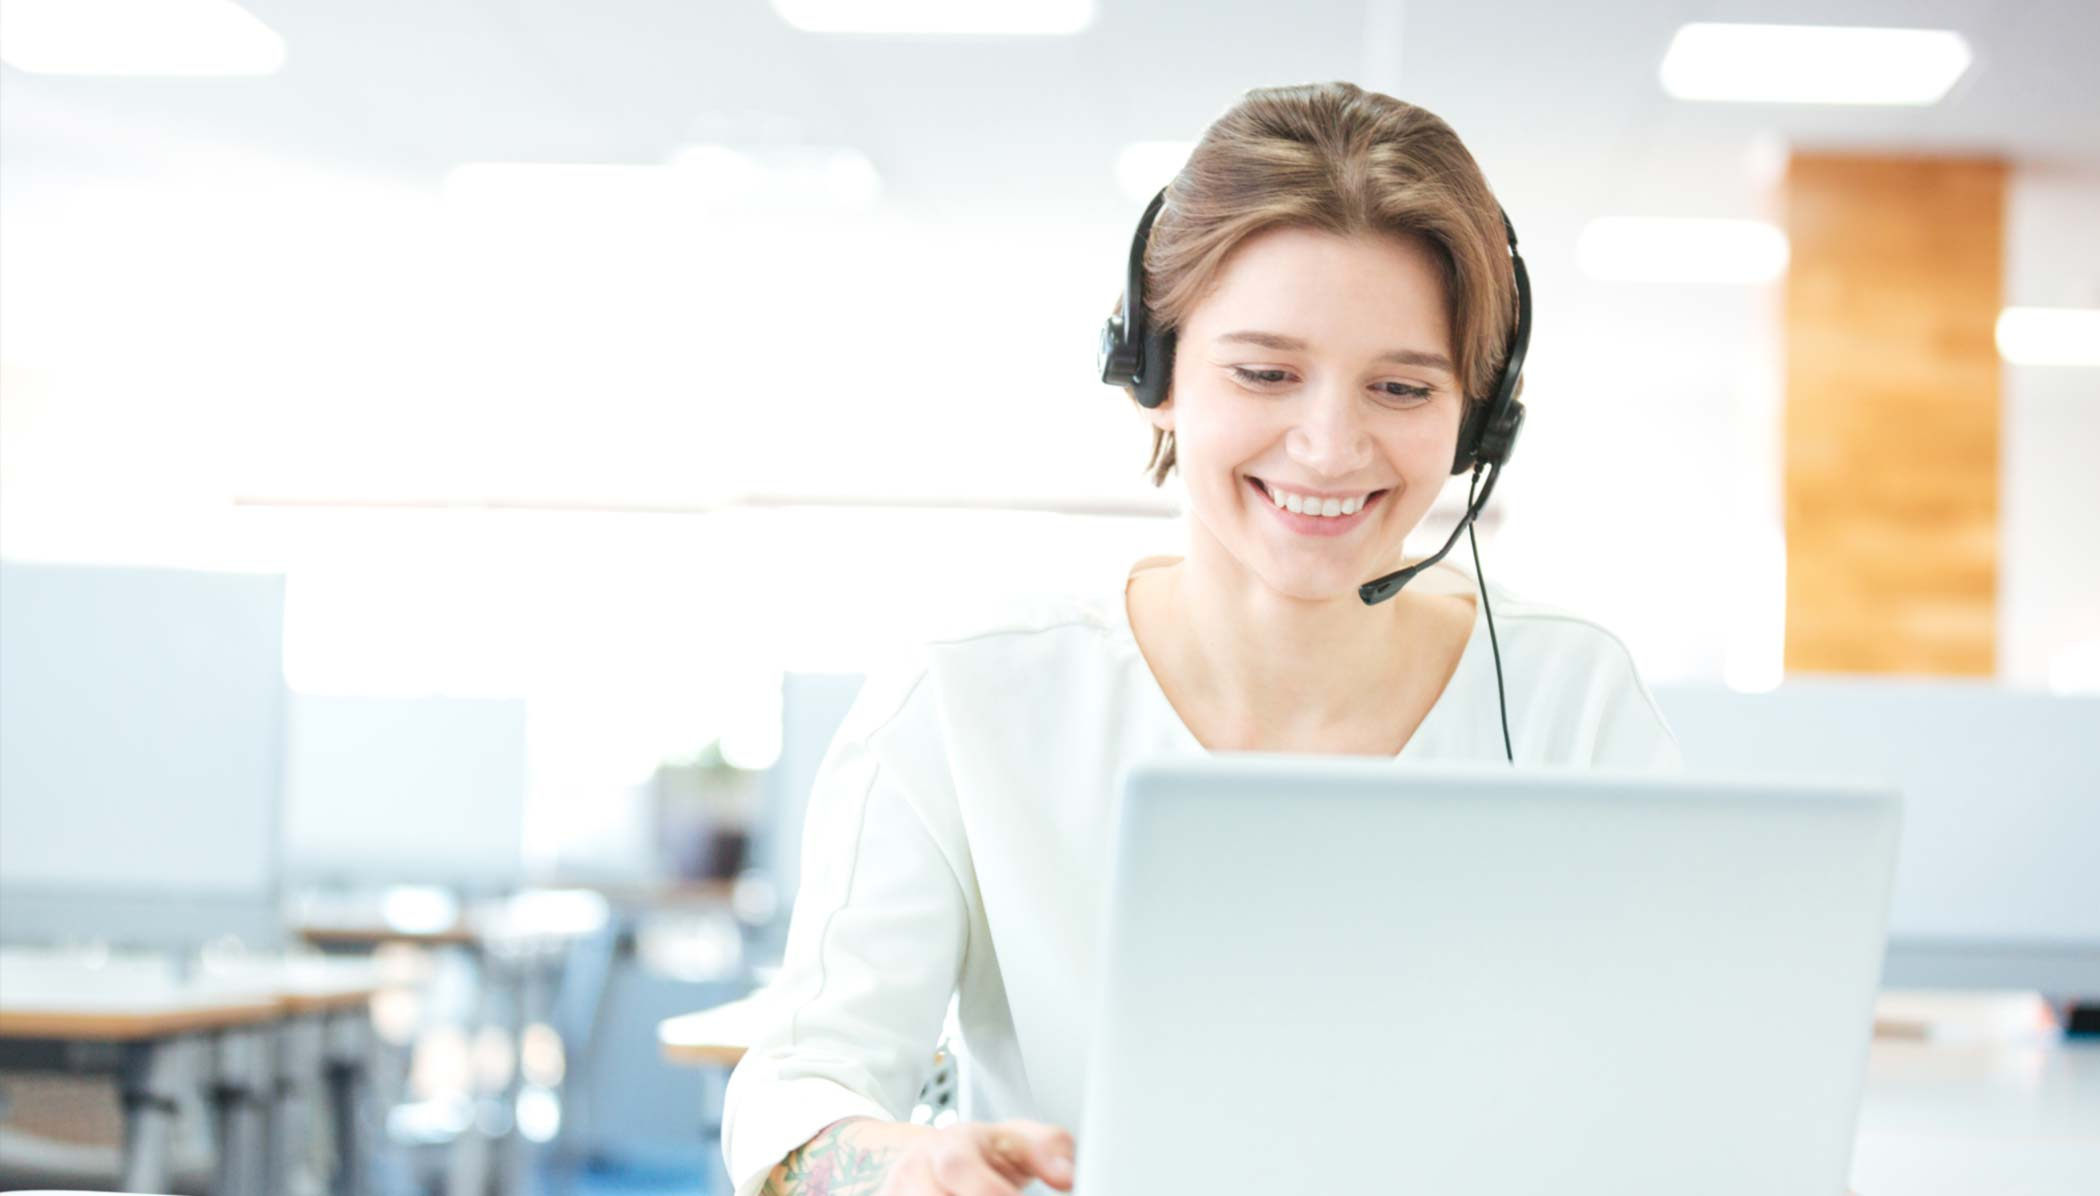 Customer Service Professional answering user requests with the help of ServiceNow CSM portal